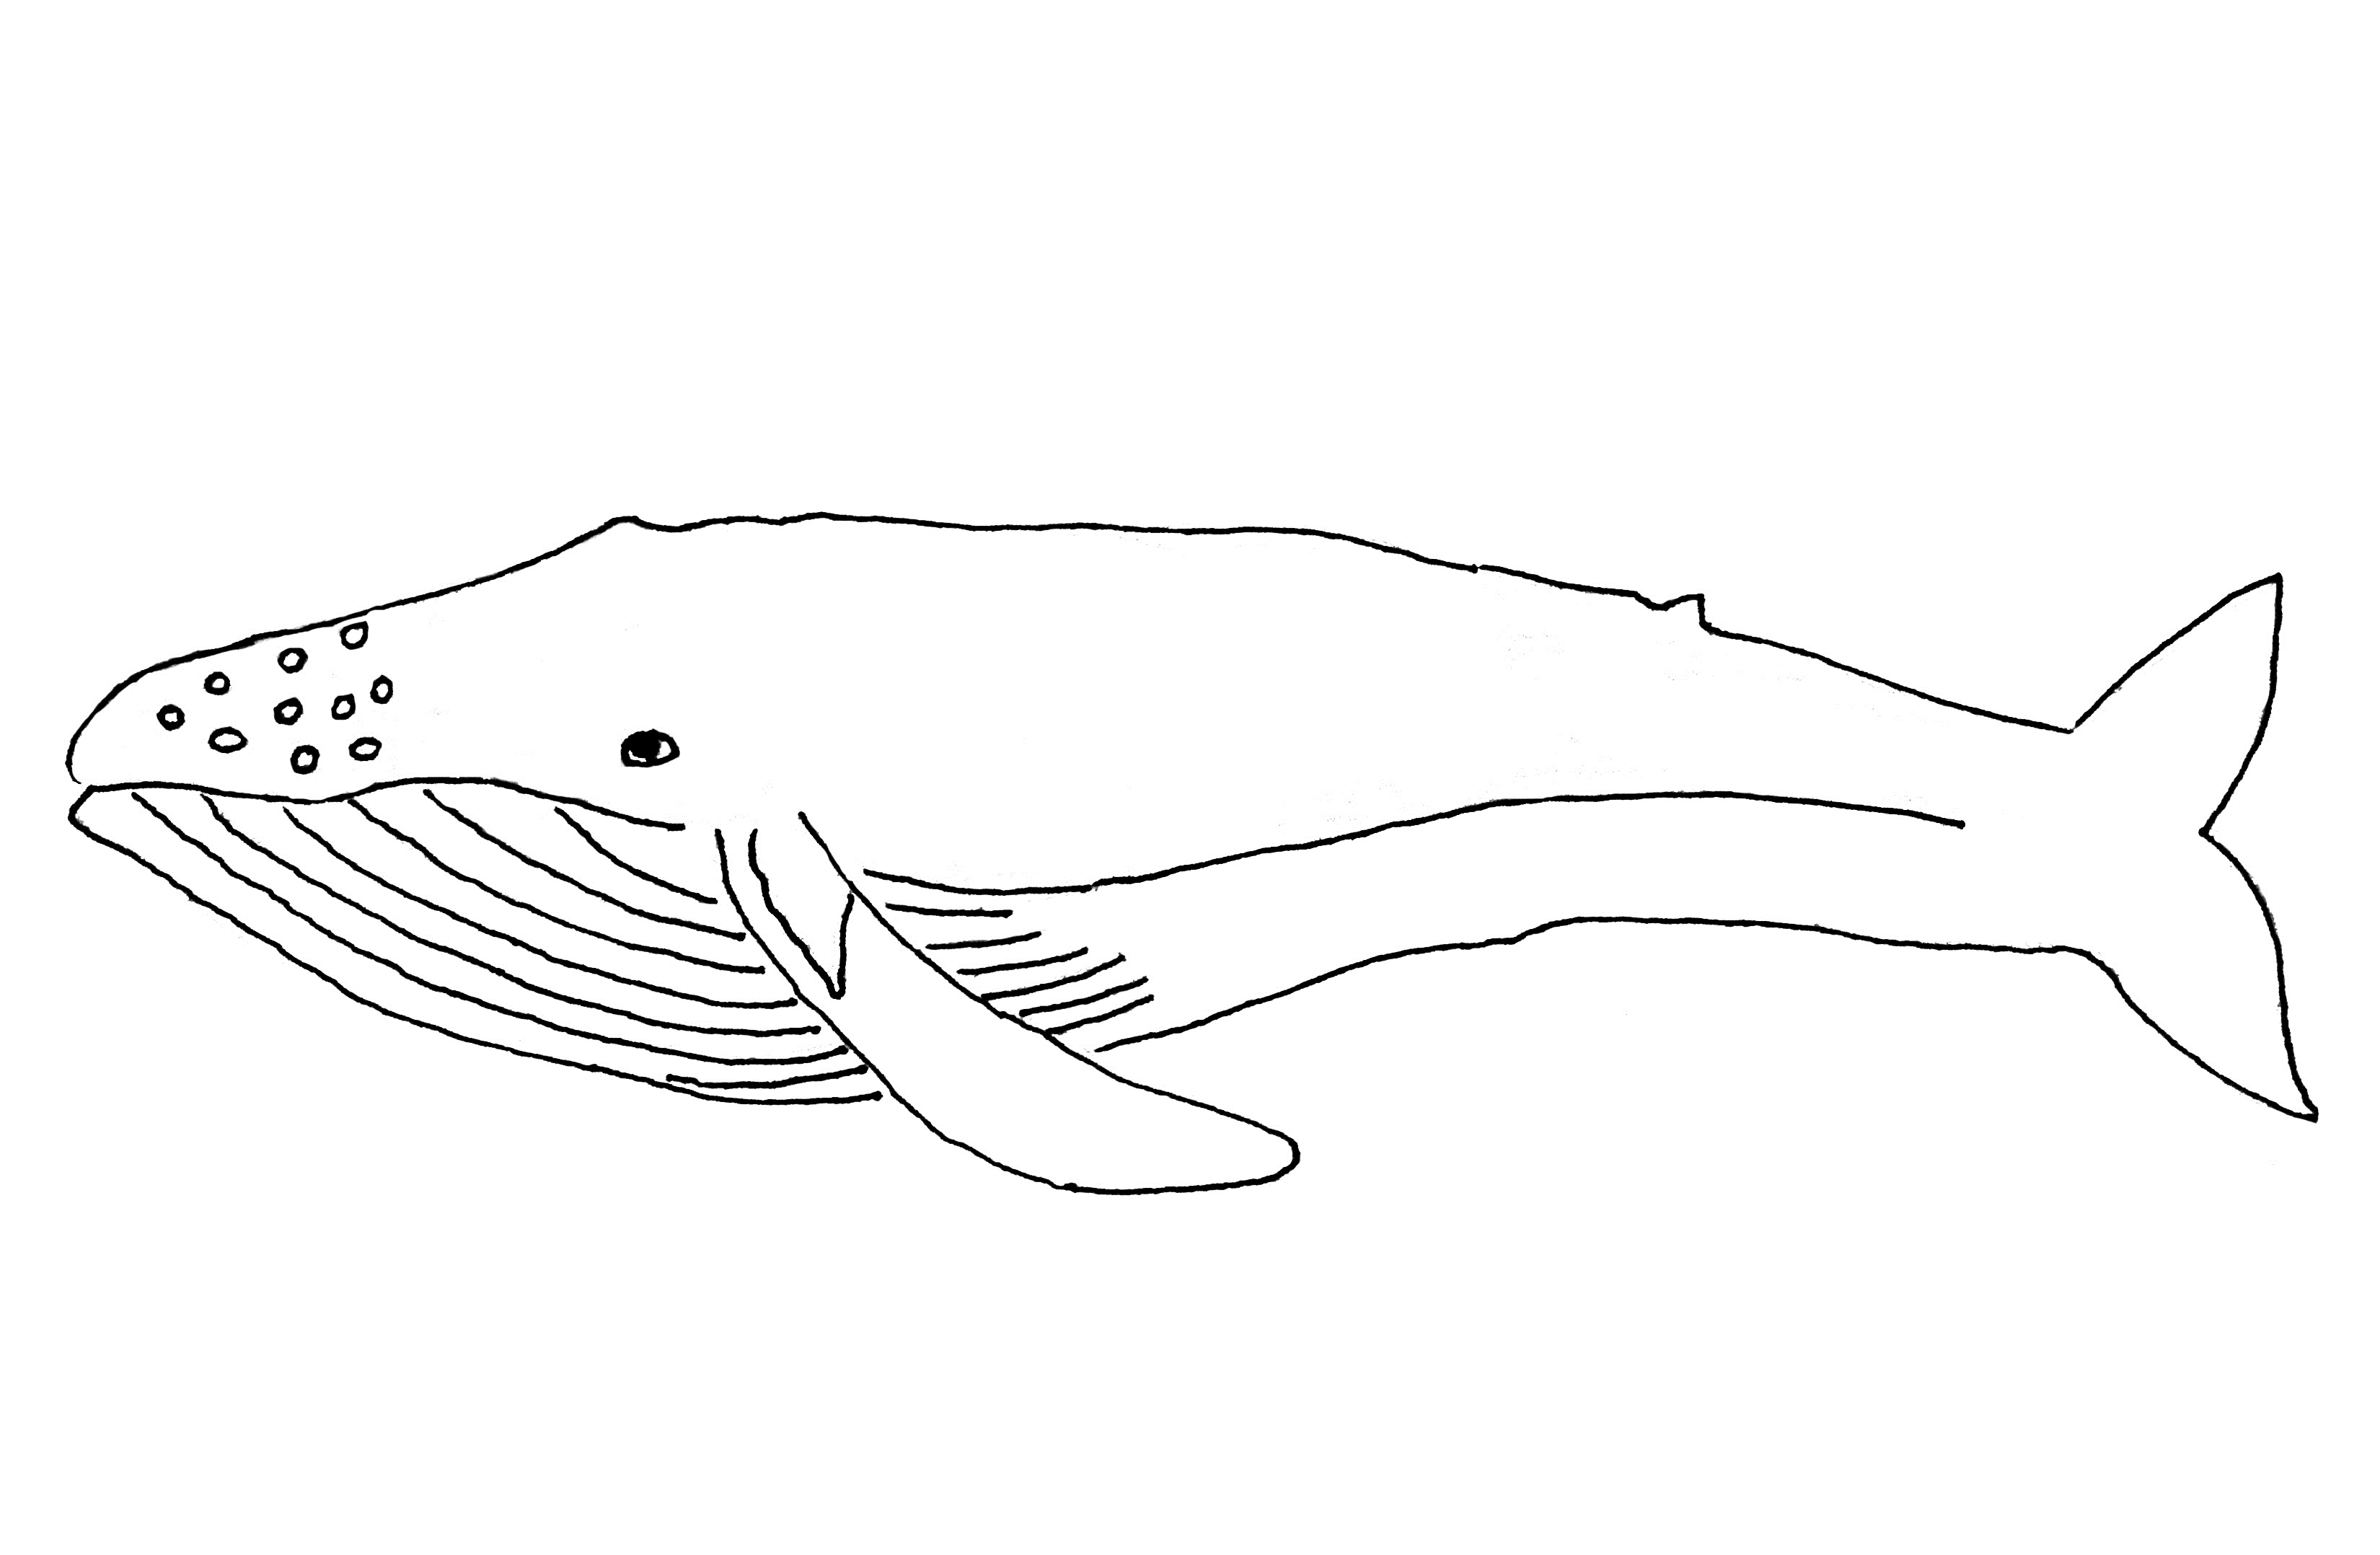 Coloring Pages For Whales : Free printable whale coloring pages for kids animal place